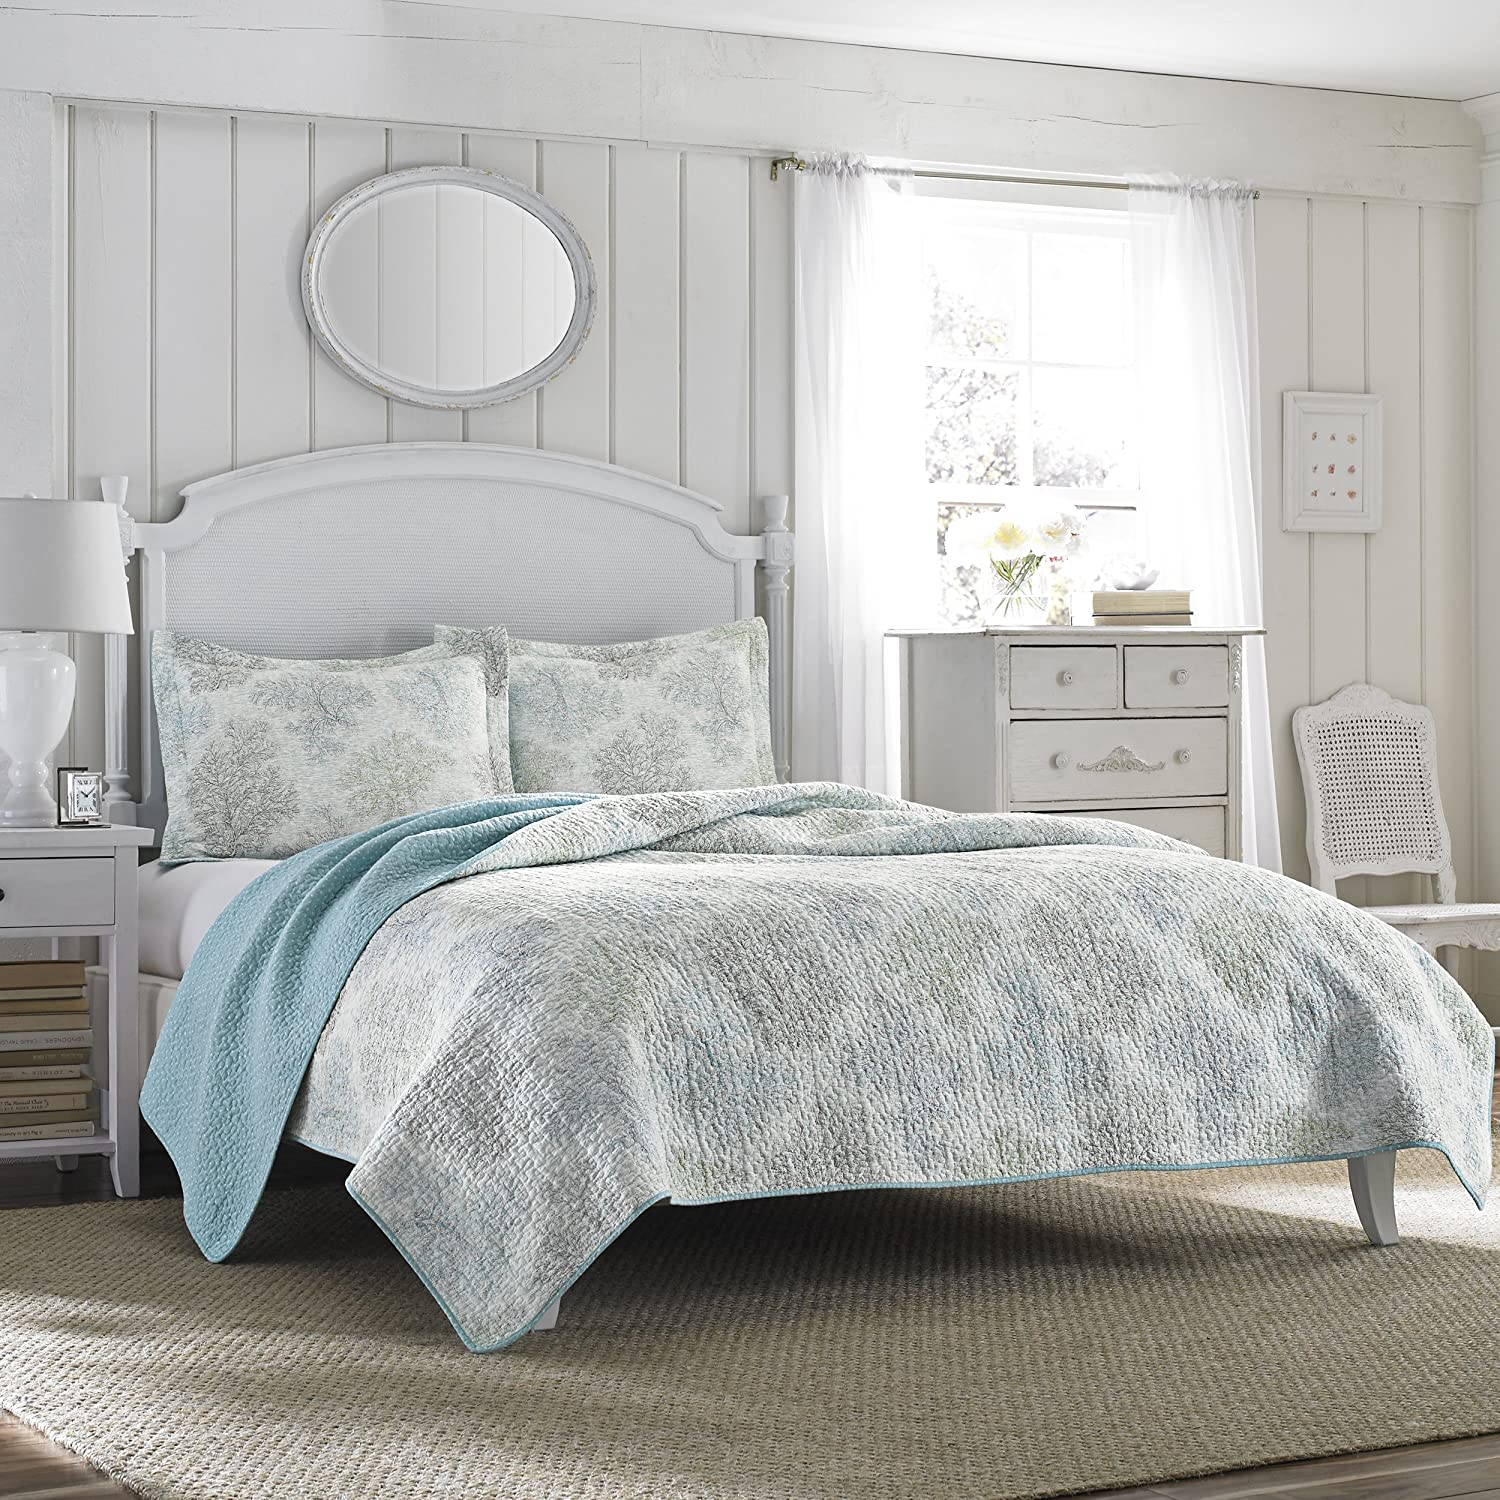 Amazon.com: Laura Ashley Saltwater Reversible Quilt Set, Full ... : laura ashley caroline quilt - Adamdwight.com